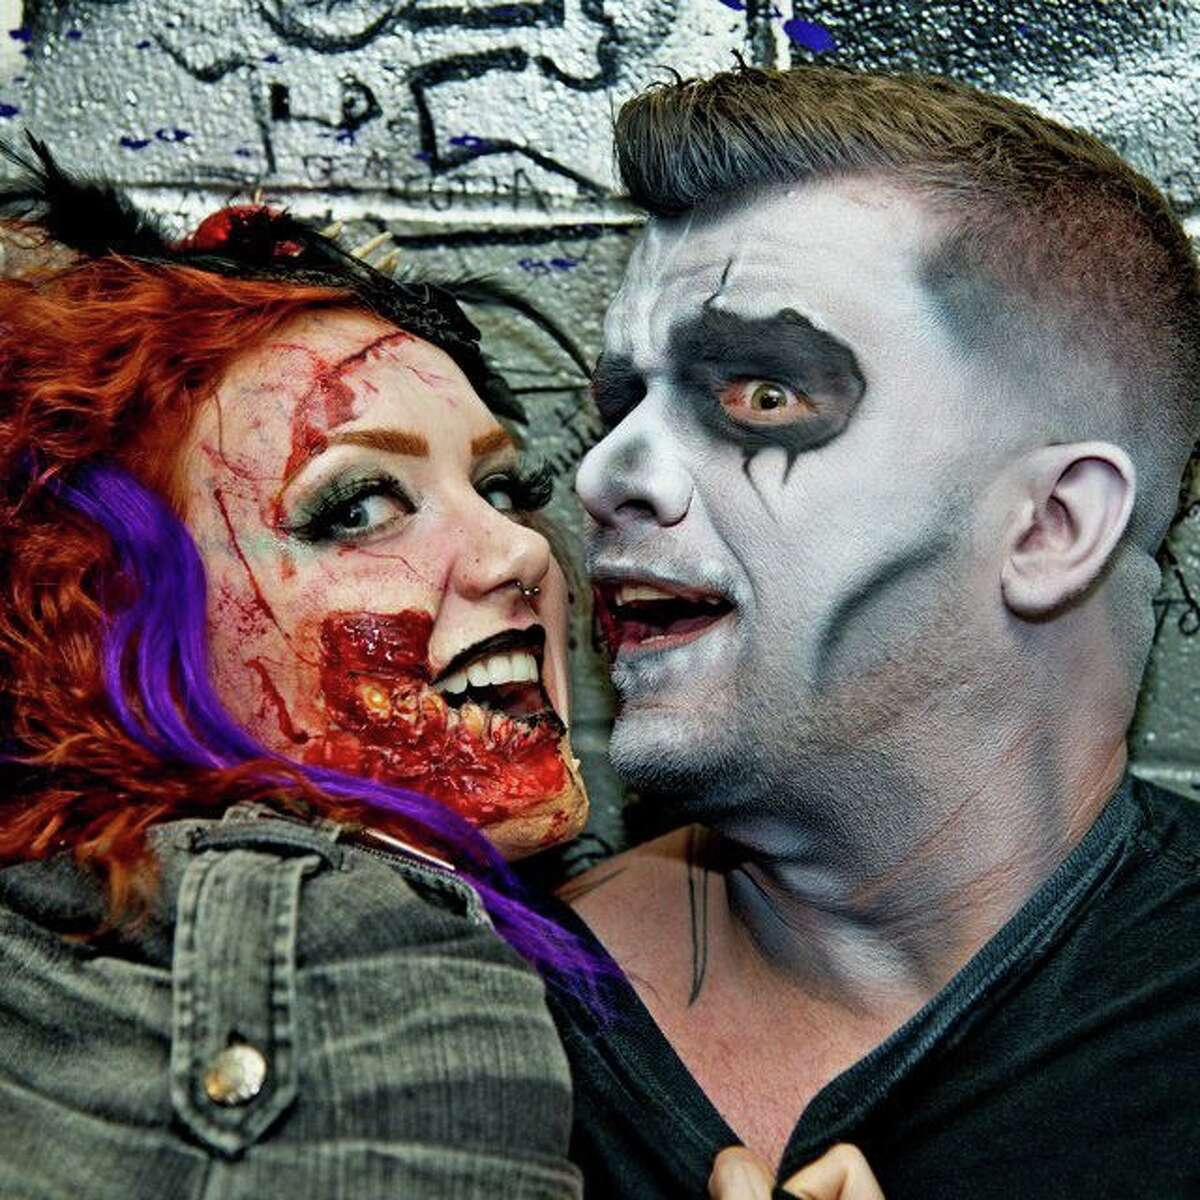 Darren Tompkins, founder of the Houston Zombie Walk, and friend.